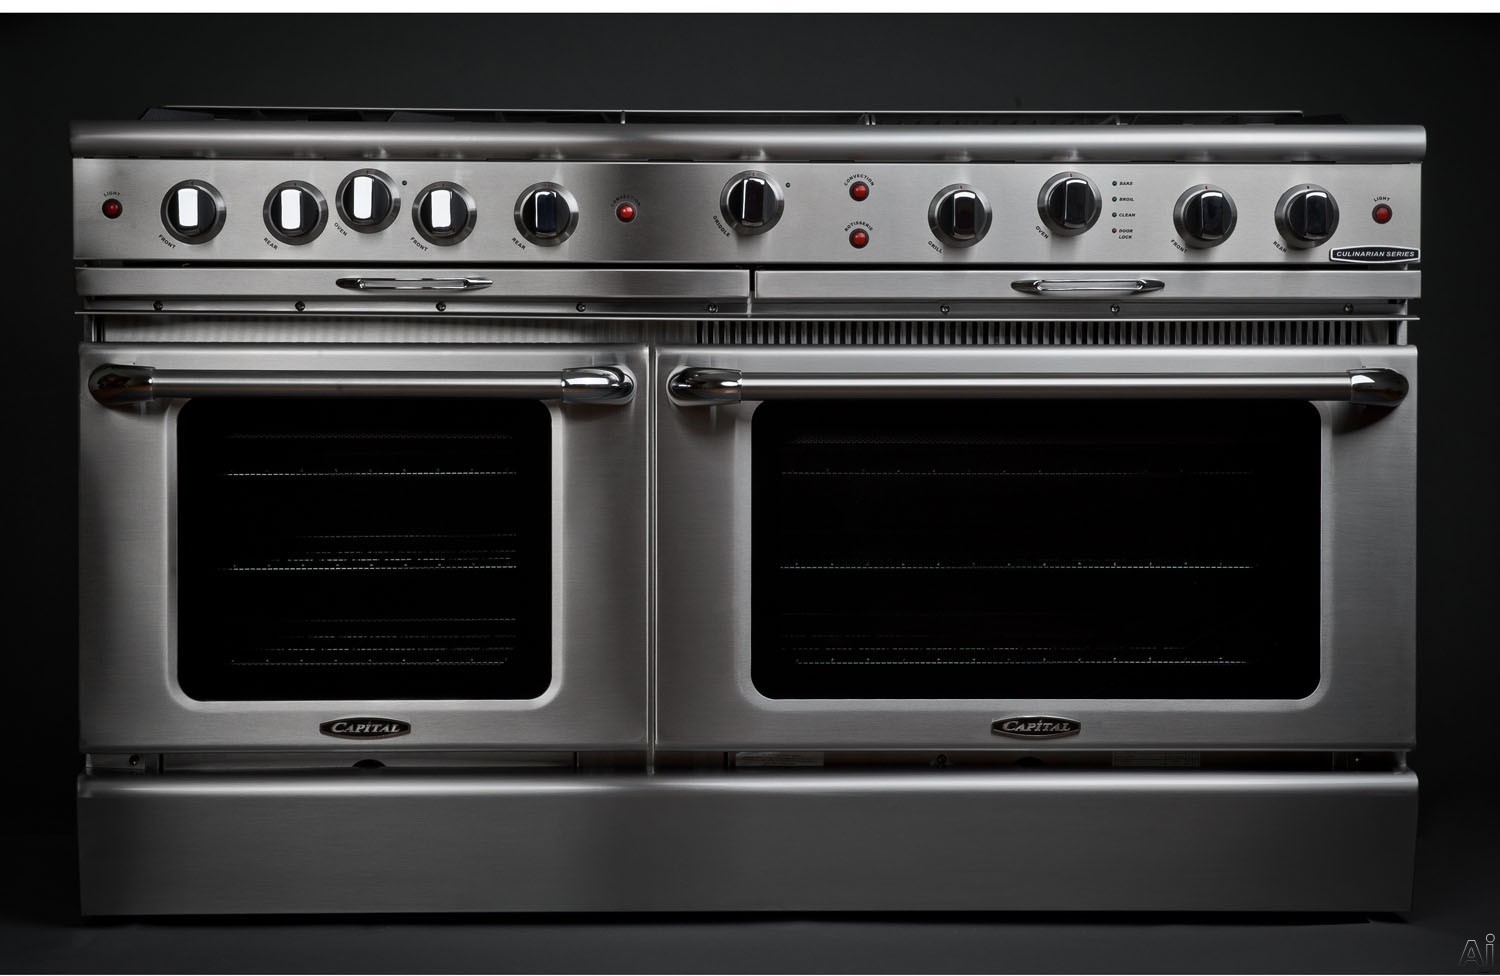 "Capital Culinarian Series CGSR604GG2 60 Inch Pro-Style Gas Range with 6 Open Burners, 24"""" Thermo Griddle, Moto-Rotisâ""¢ Rotisserie, Flex-Rollâ""¢ Oven Racks, 4.6 cu. ft. Convection Oven, 3.1 cu. ft. Secondary Oven, Self Clean and Infrared Glass Broiler"""